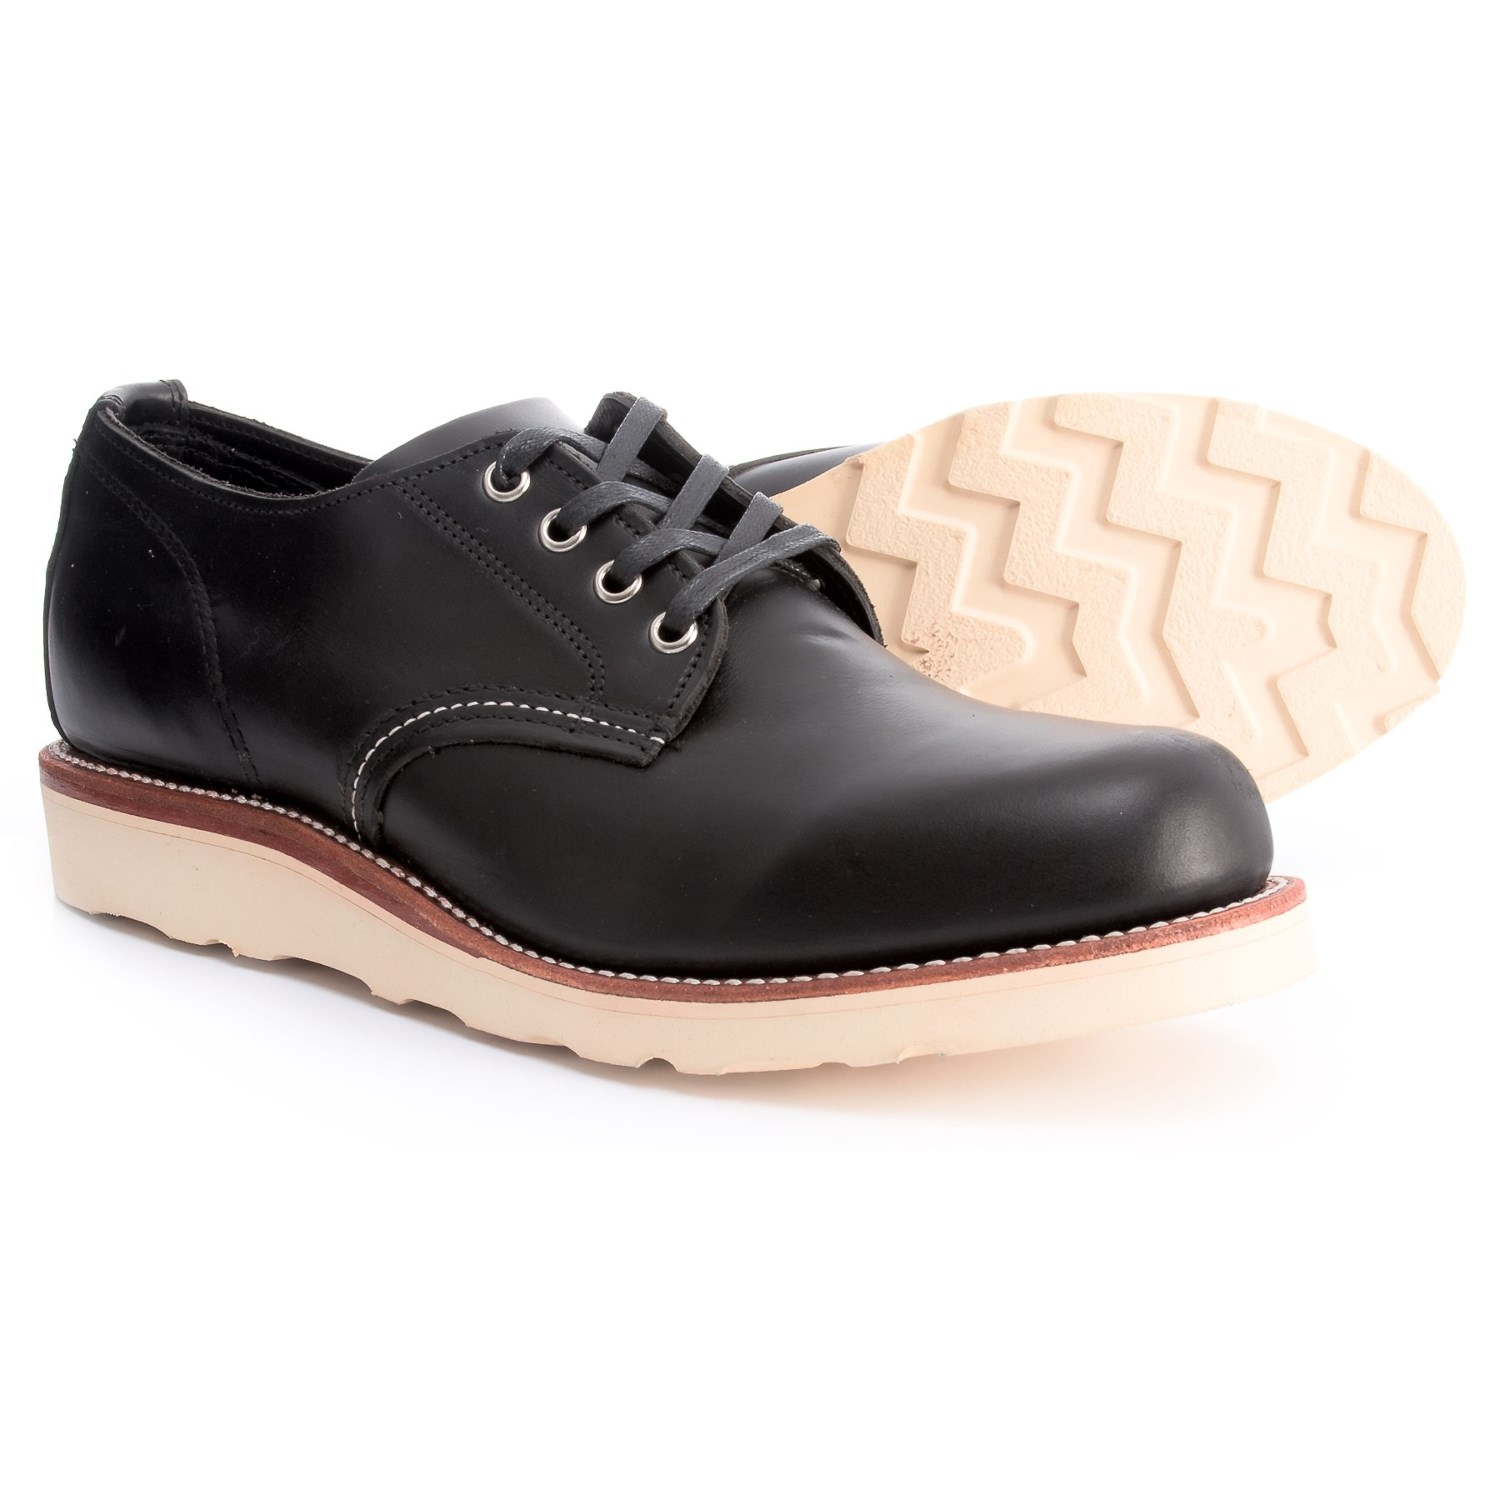 Chippewa Aldrich Oxford Shoes - Leather (For Men)